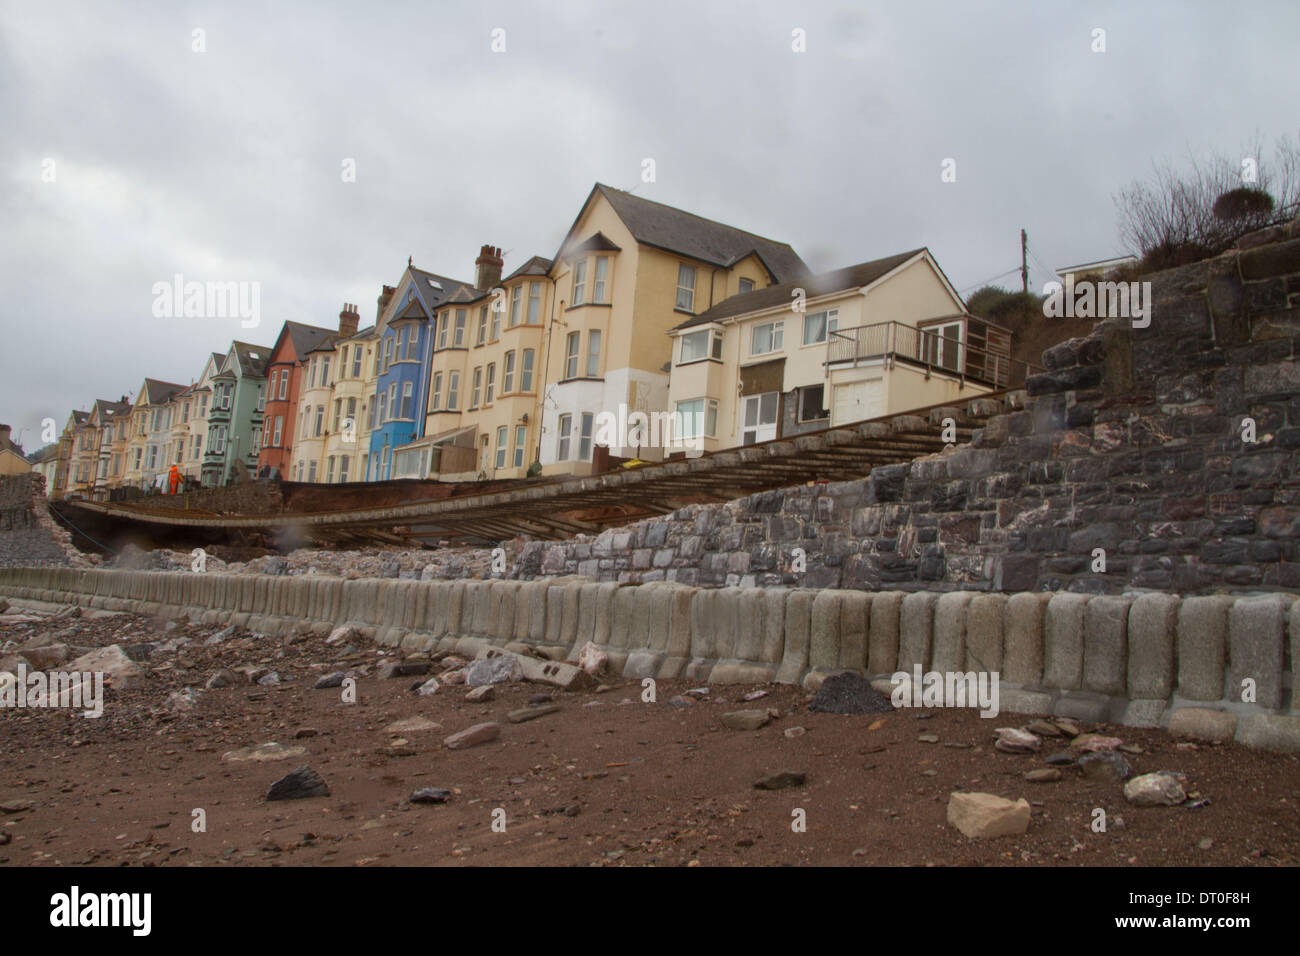 Dawlish, Devon, UK. 5th February 2014. Workers inspect the damaged line at Dawlish. High tide waves smashed the sea wall and badly damaged the track. Credit:  nidpor/Alamy Live News - Stock Image